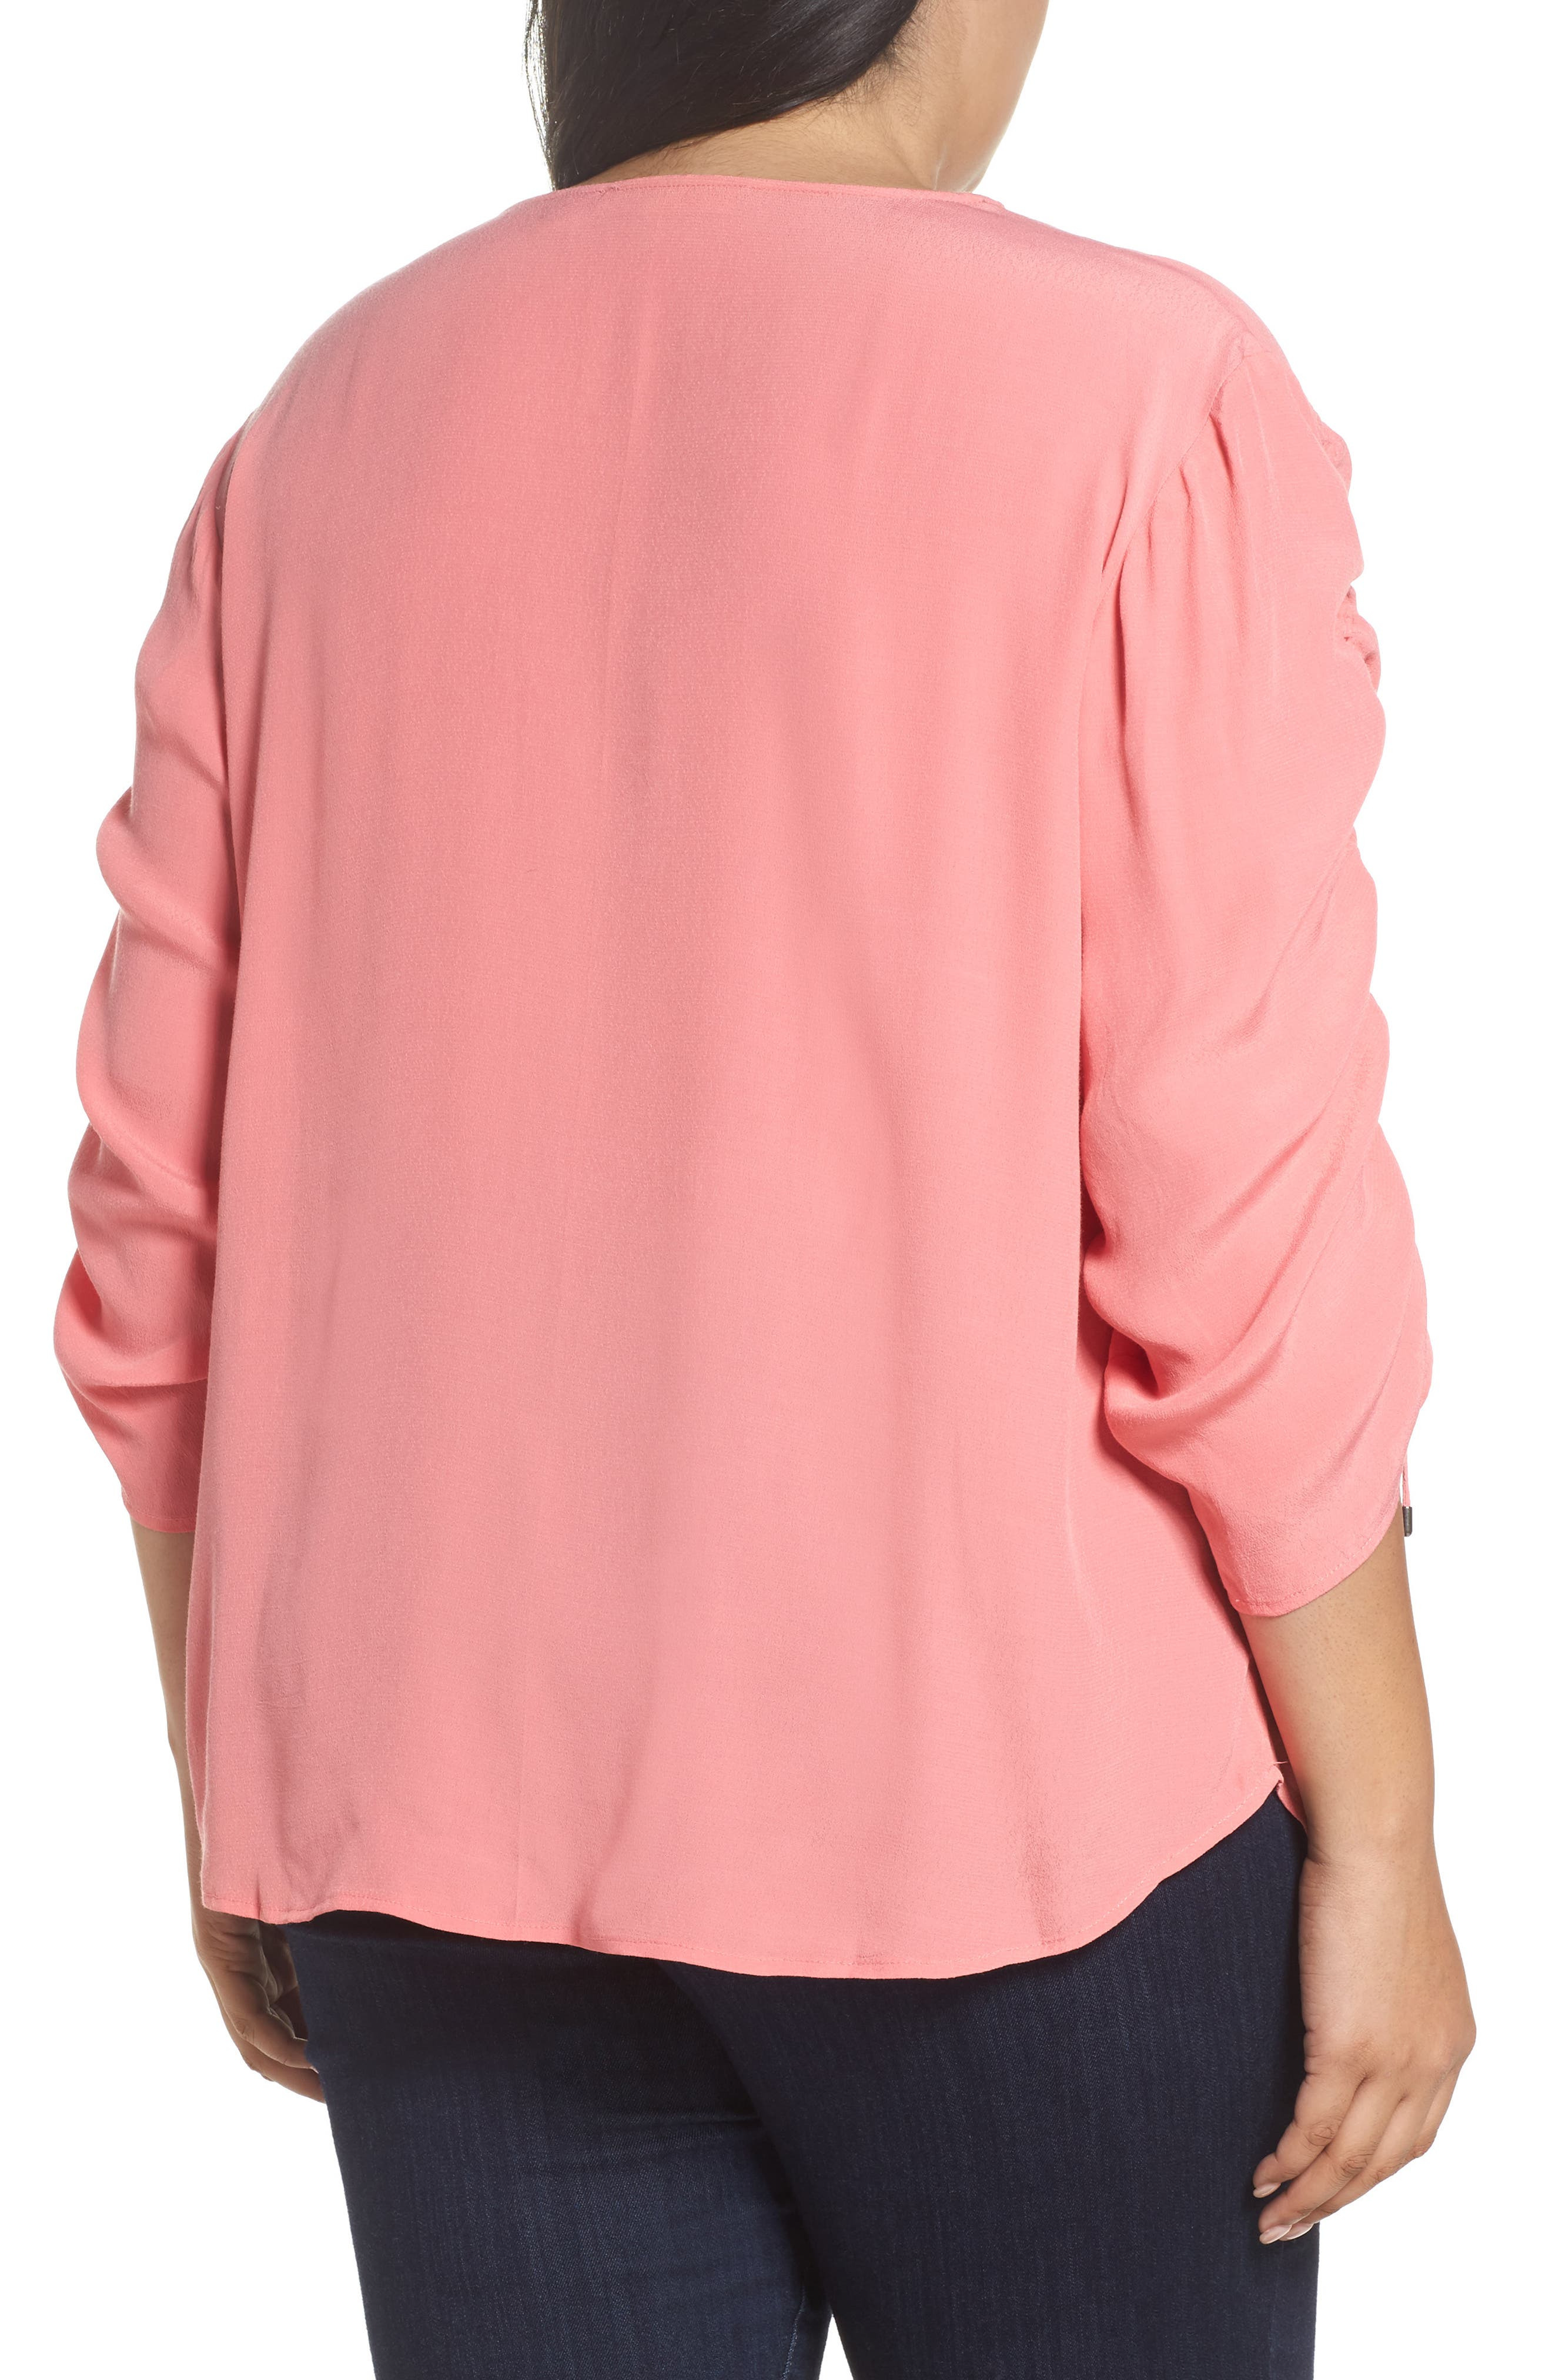 Cinched Sleeve Top,                             Alternate thumbnail 6, color,